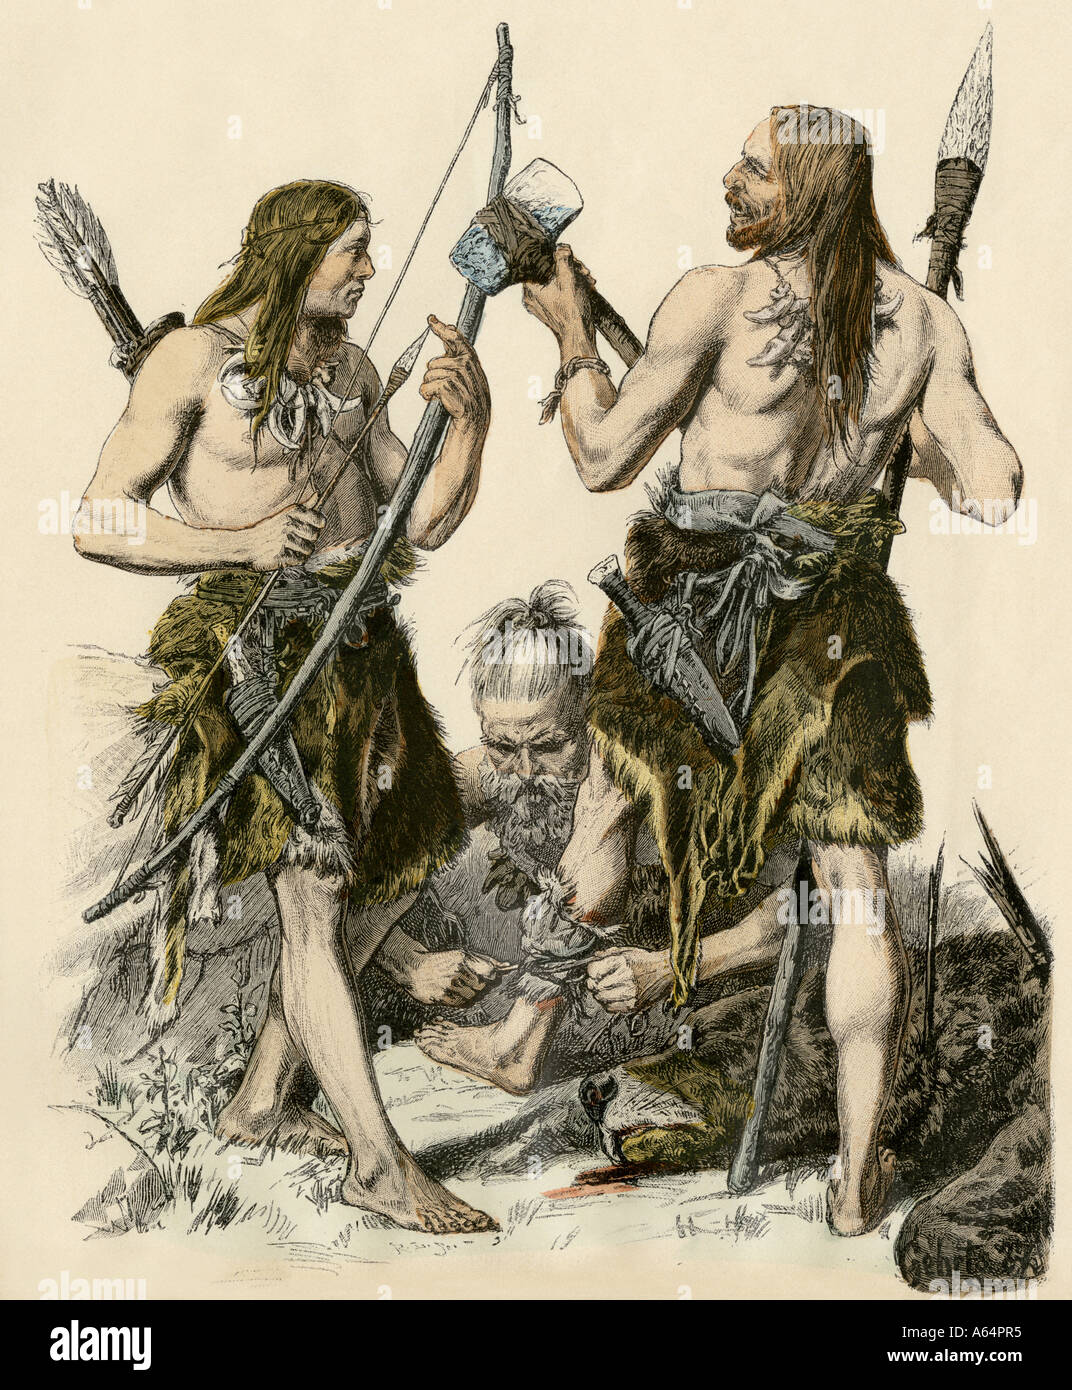 European hunters of the Stone Age - Stock Image